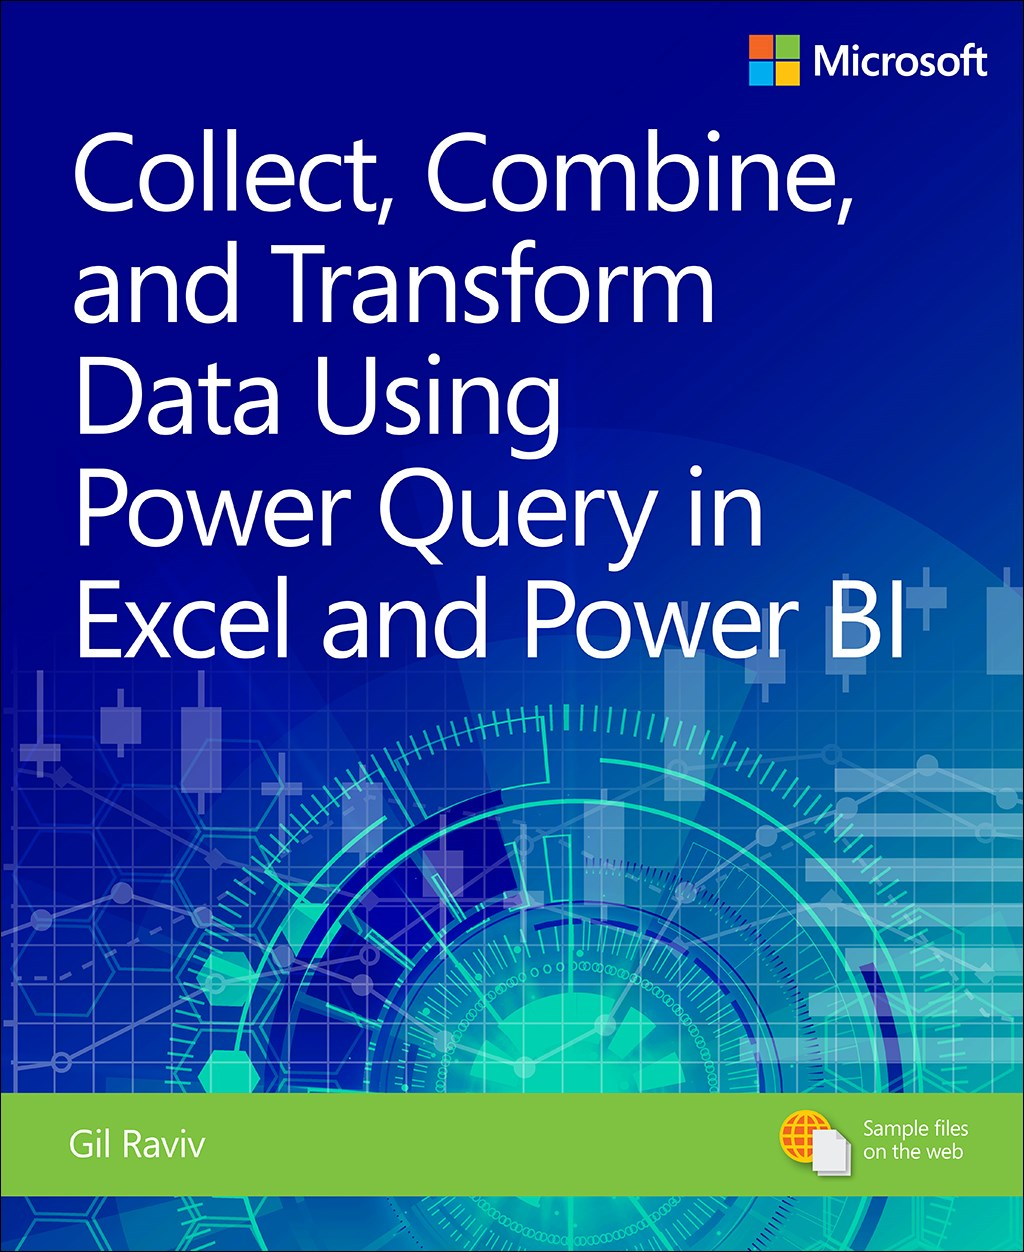 Collect, Combine, and Transform Data using Power Query in Excel and Power BI Collect, Combine, and Transform Data using Power Query in Excel and Power BI